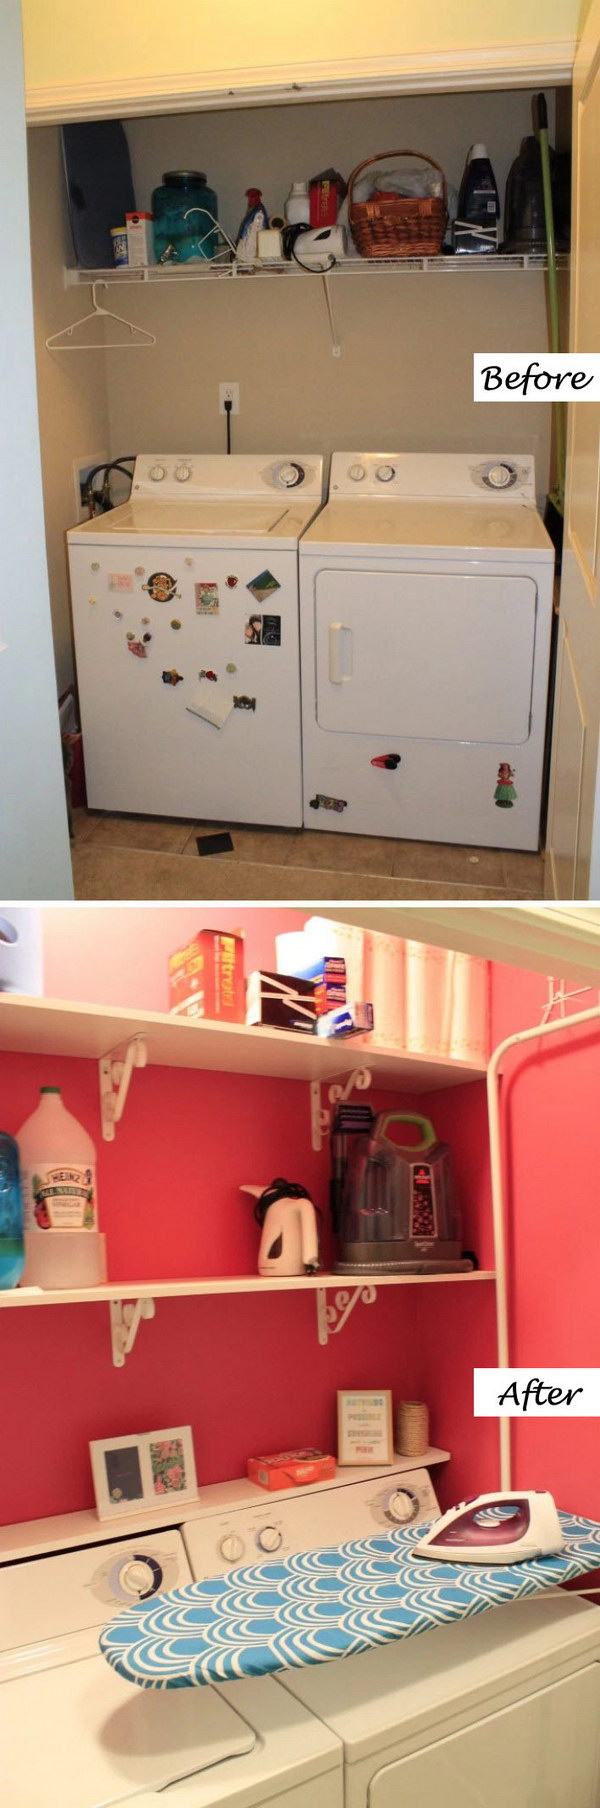 A Hot Pink, Girly Laundry Room Makeover.